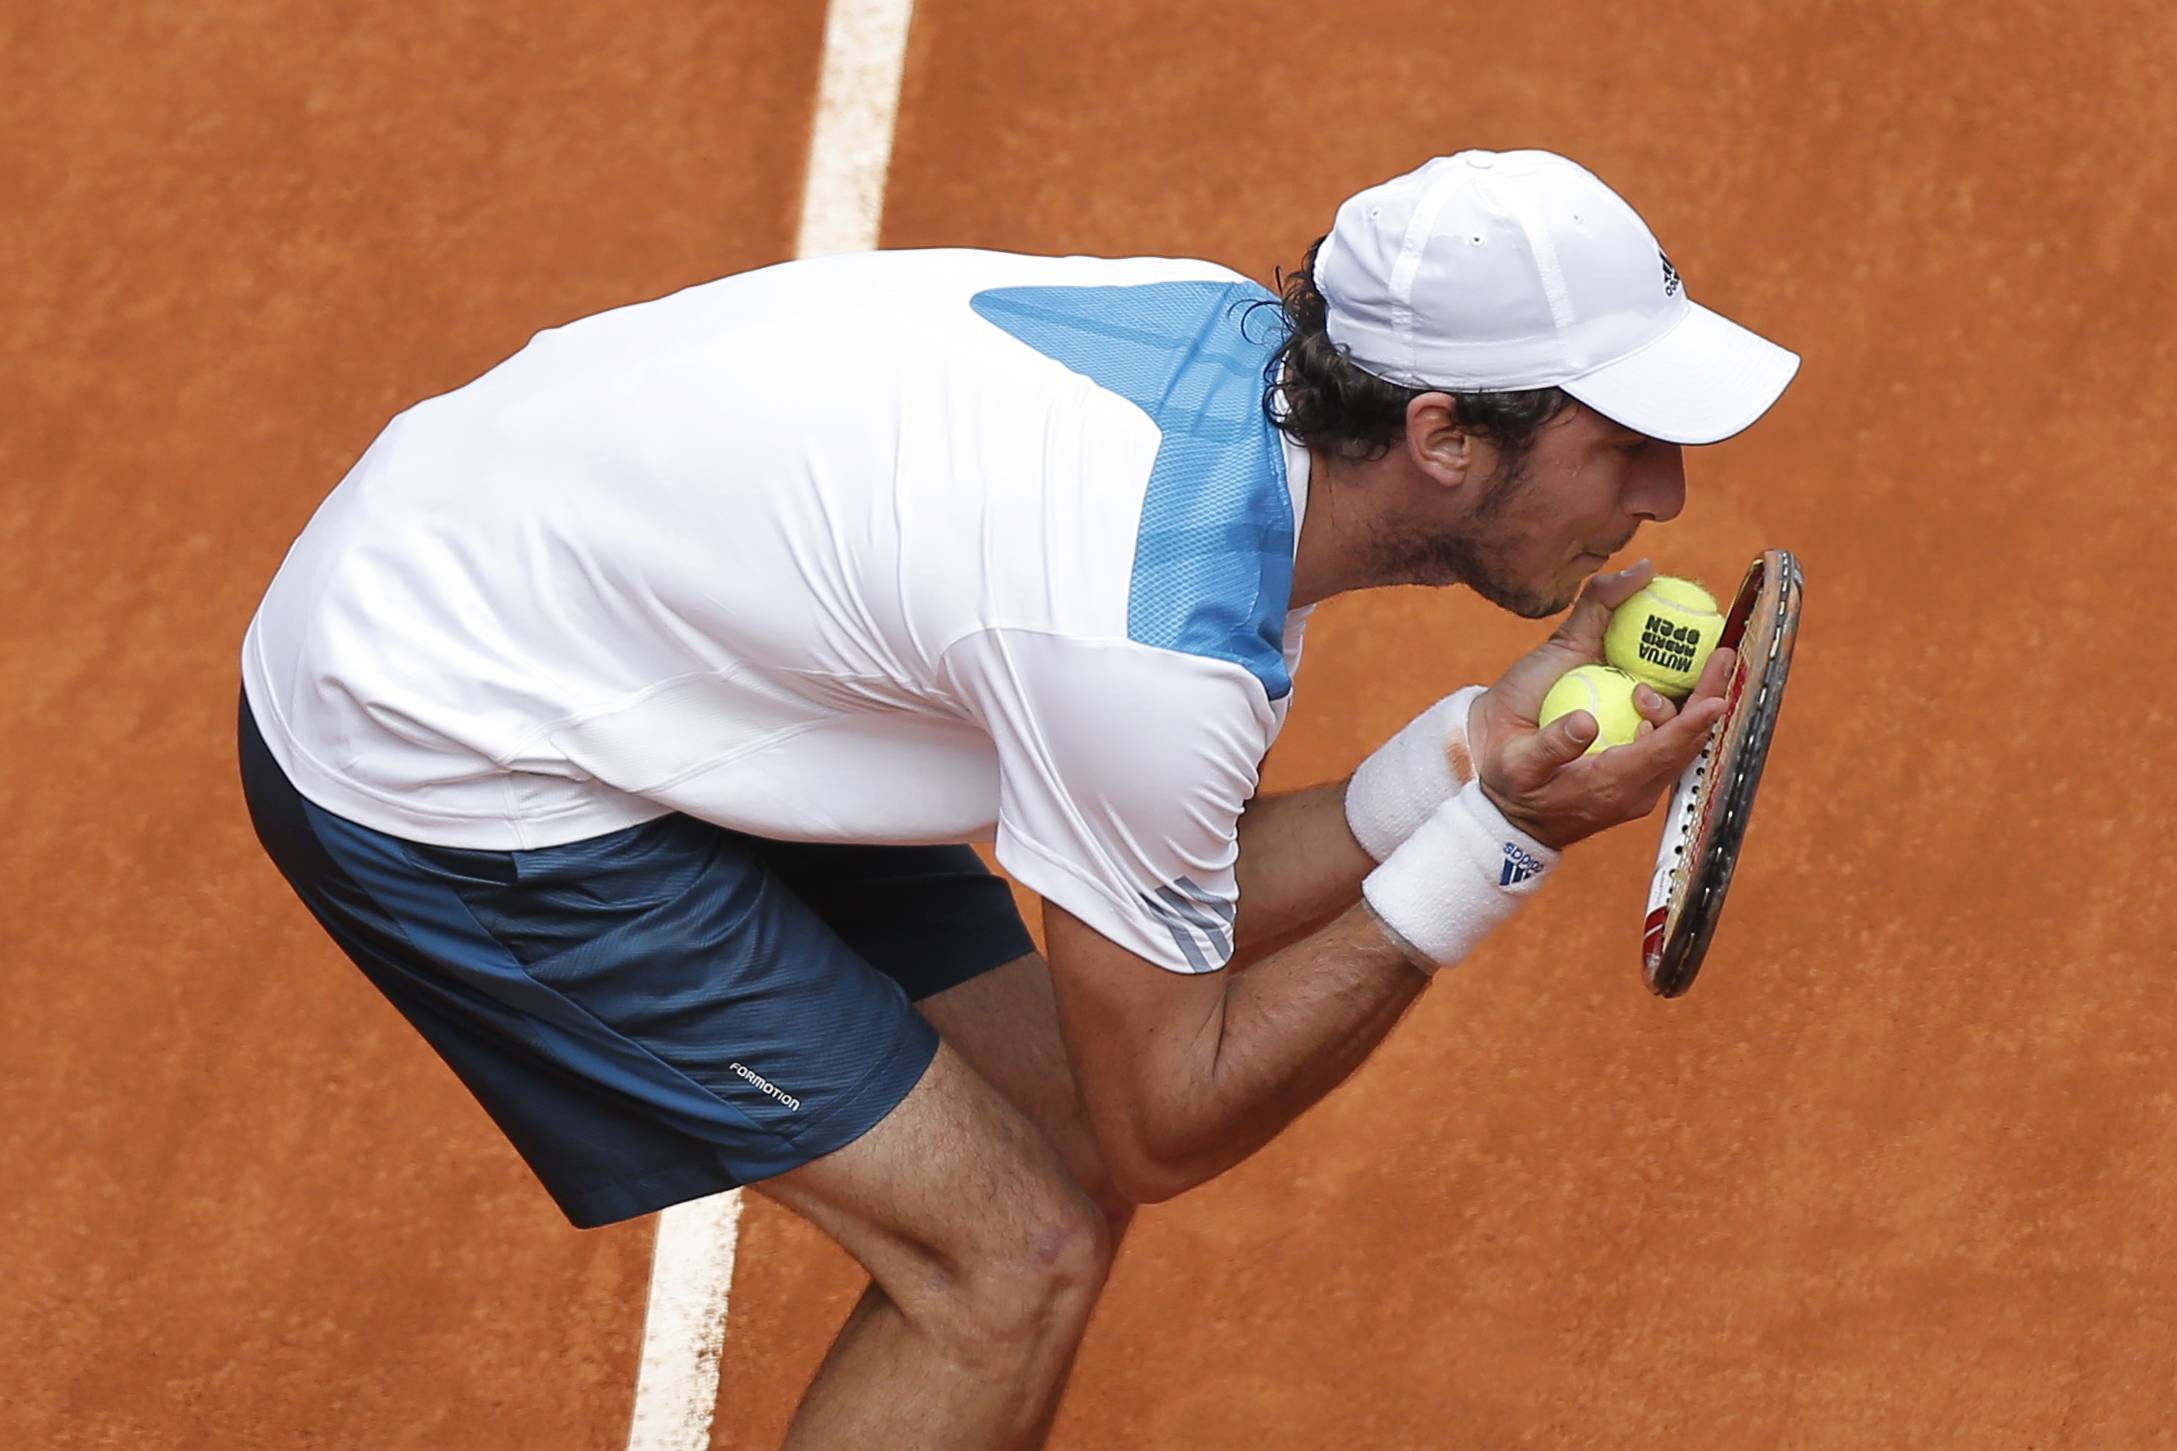 Juan Monaco from Argentina discusses a point with umpire Carlos Bernardes during a Madrid Open tennis tournament match against Rafael Nadal from Spain in Madrid, Spain, Wednesday, May 7, 2014.